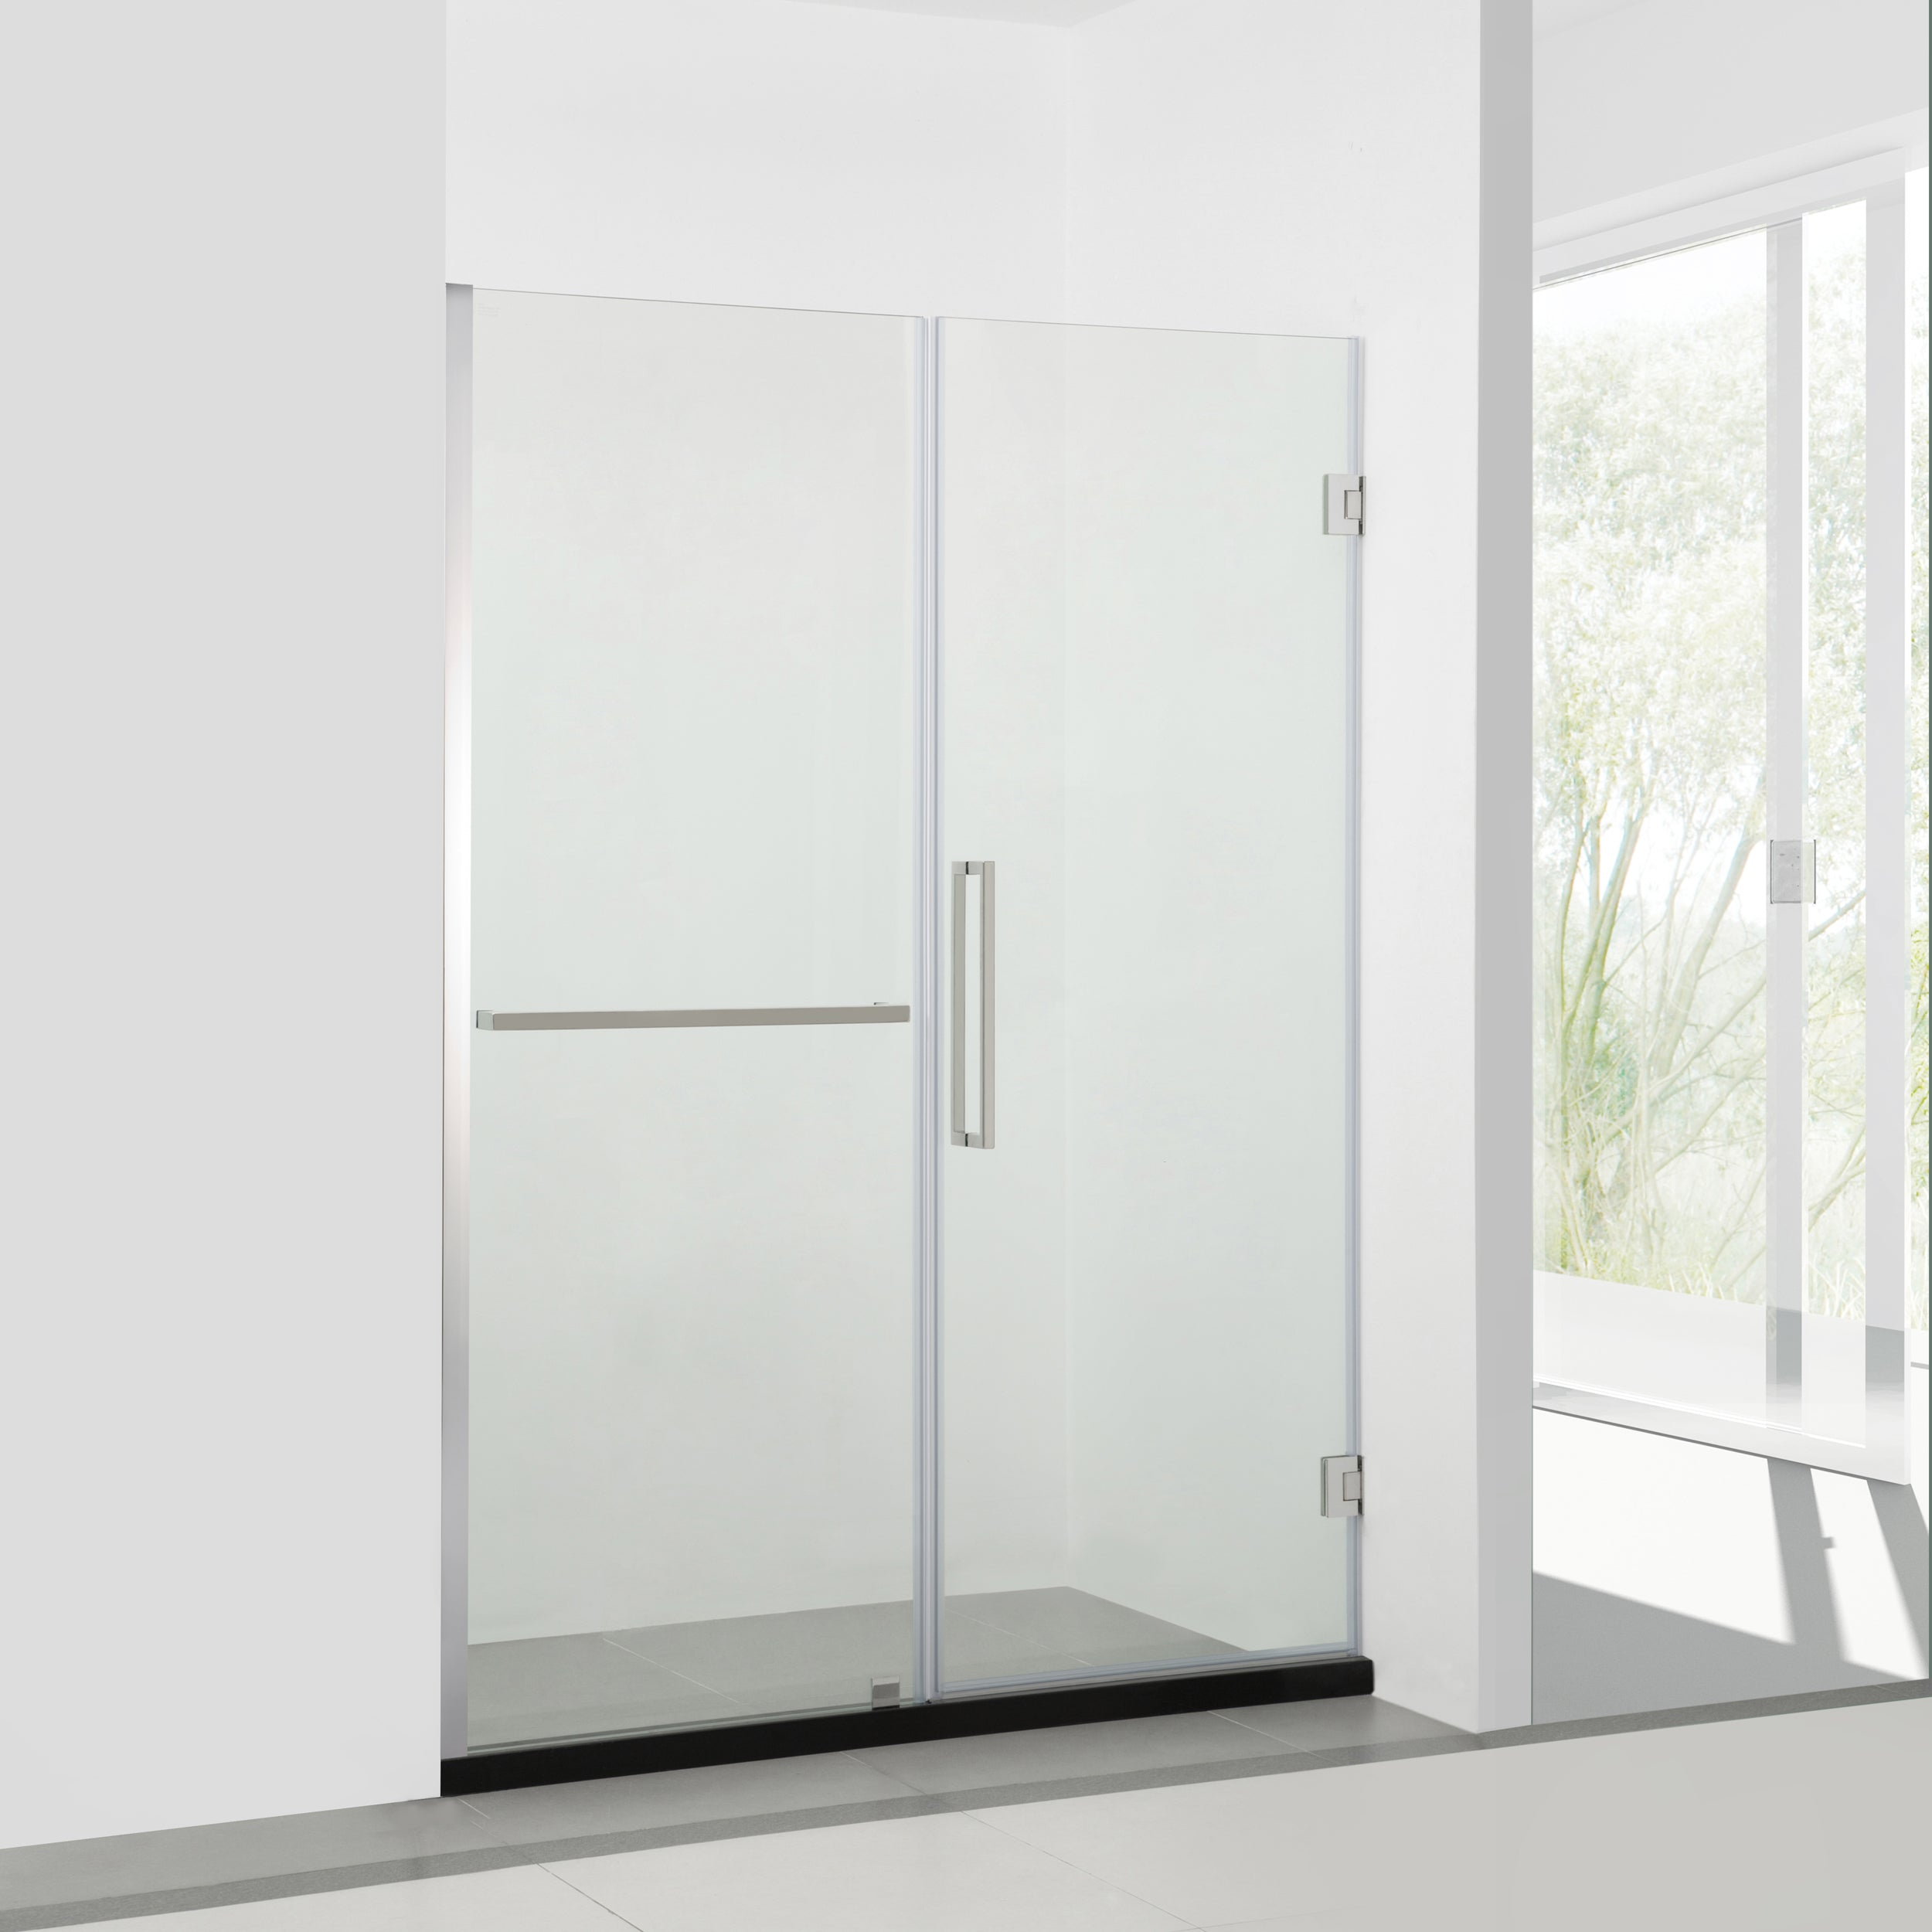 Bai 0927 Frameless 60 Inch Glass Shower Enclosure With Fixed